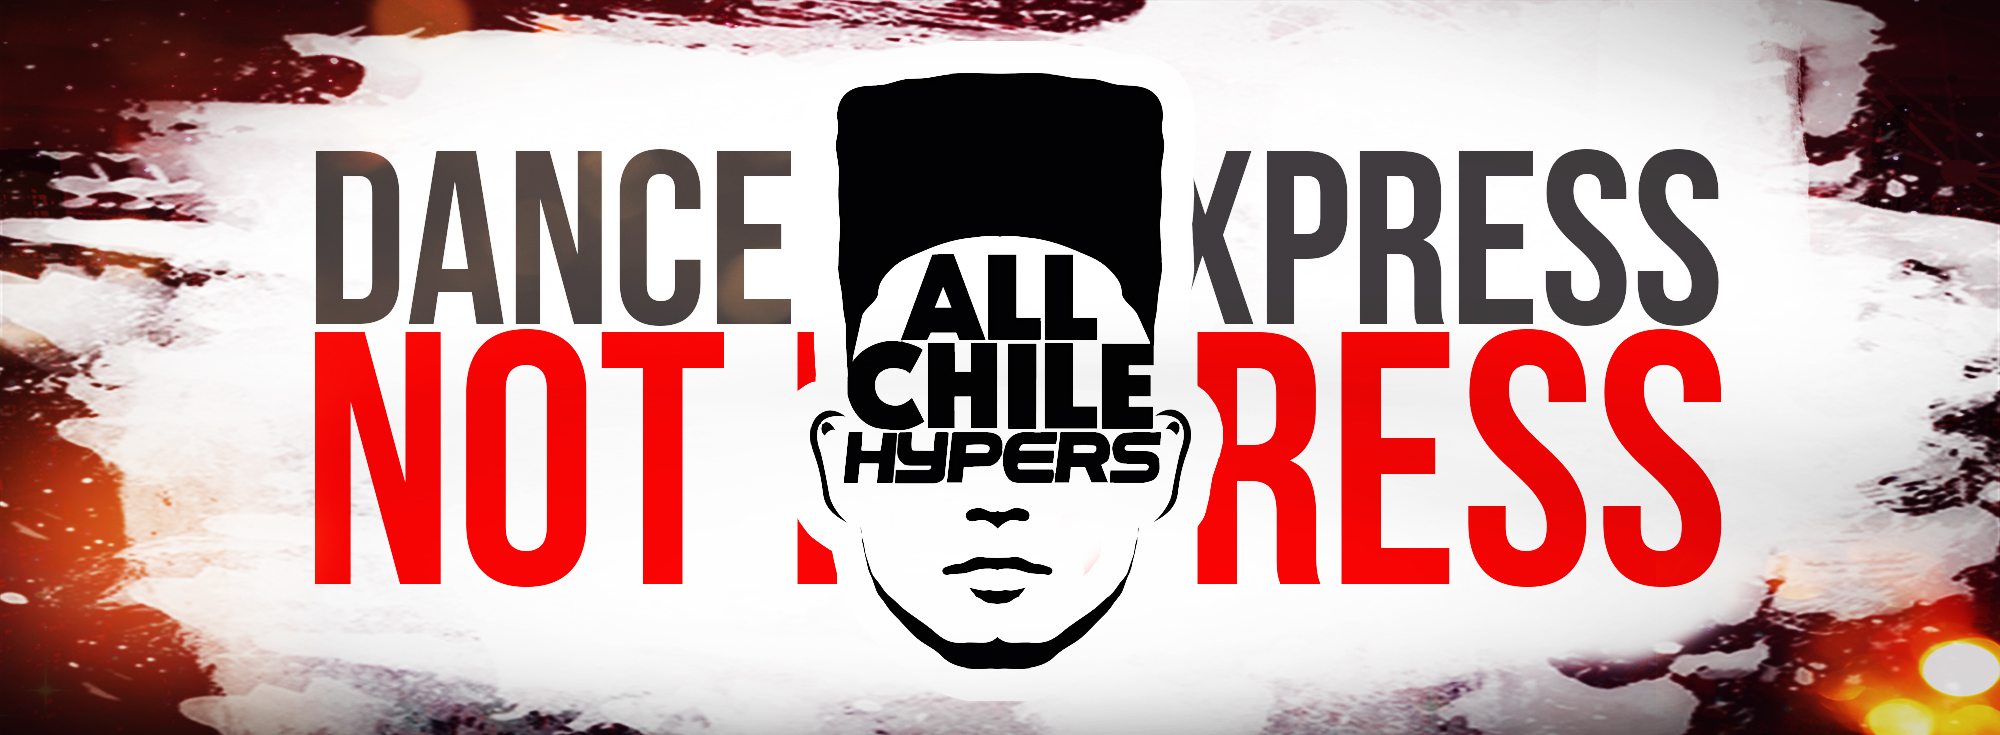 portada All Chile Hypers